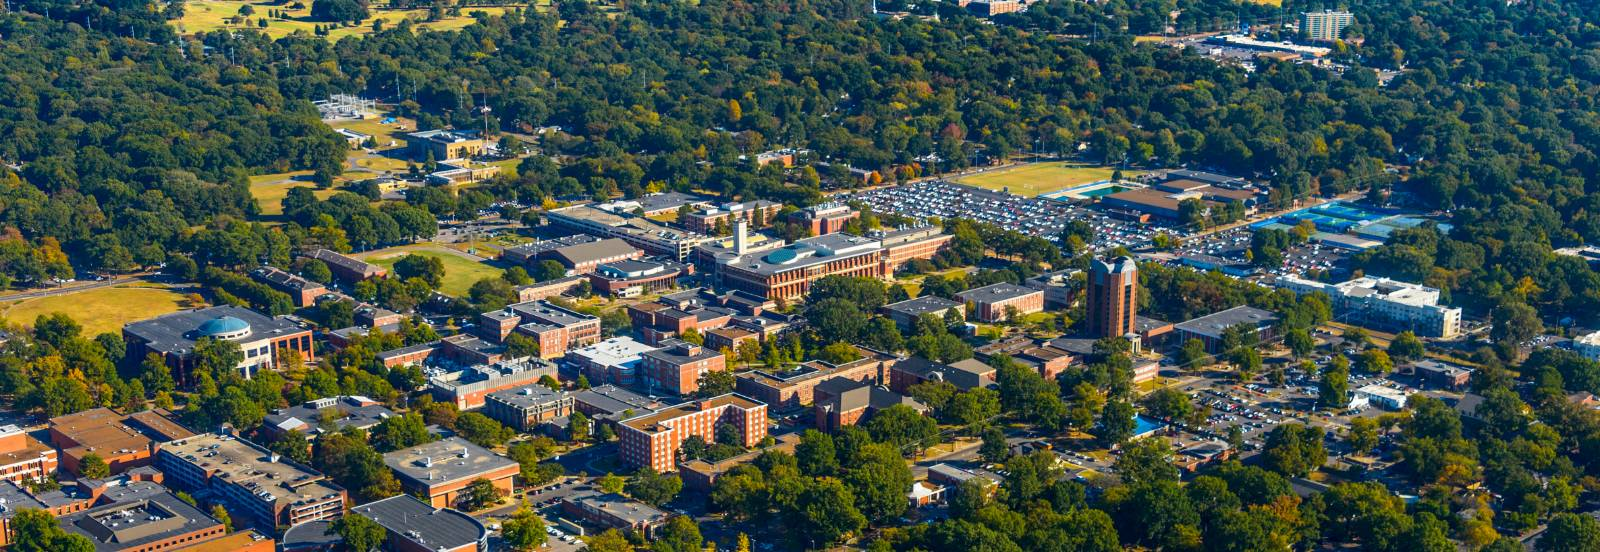 Aerial view of the University of Memphis